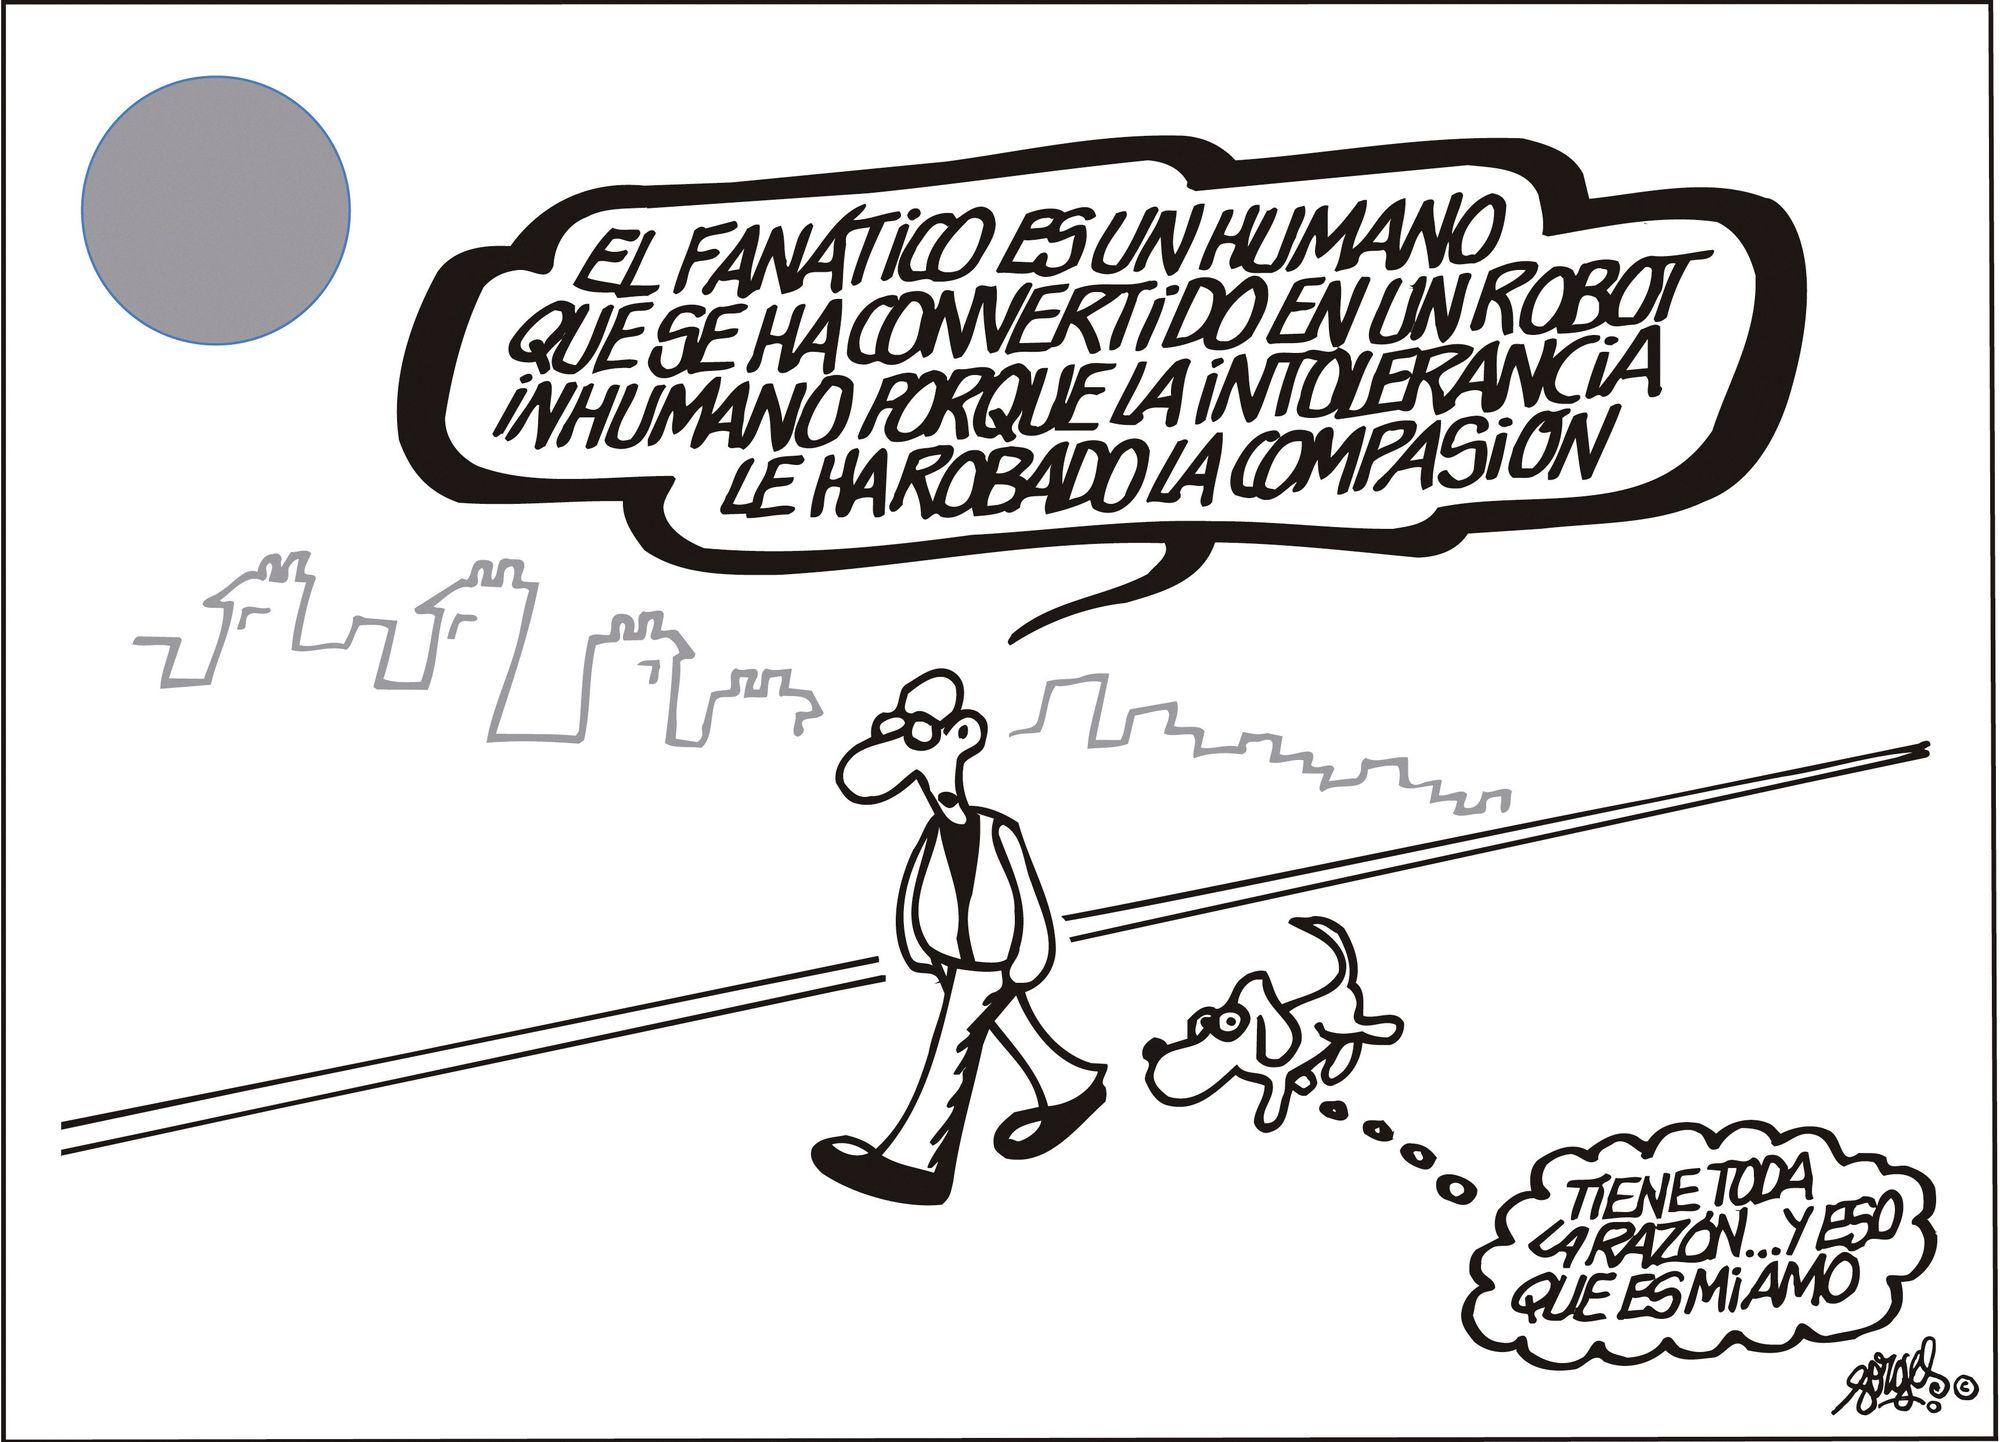 Forges, 2015.